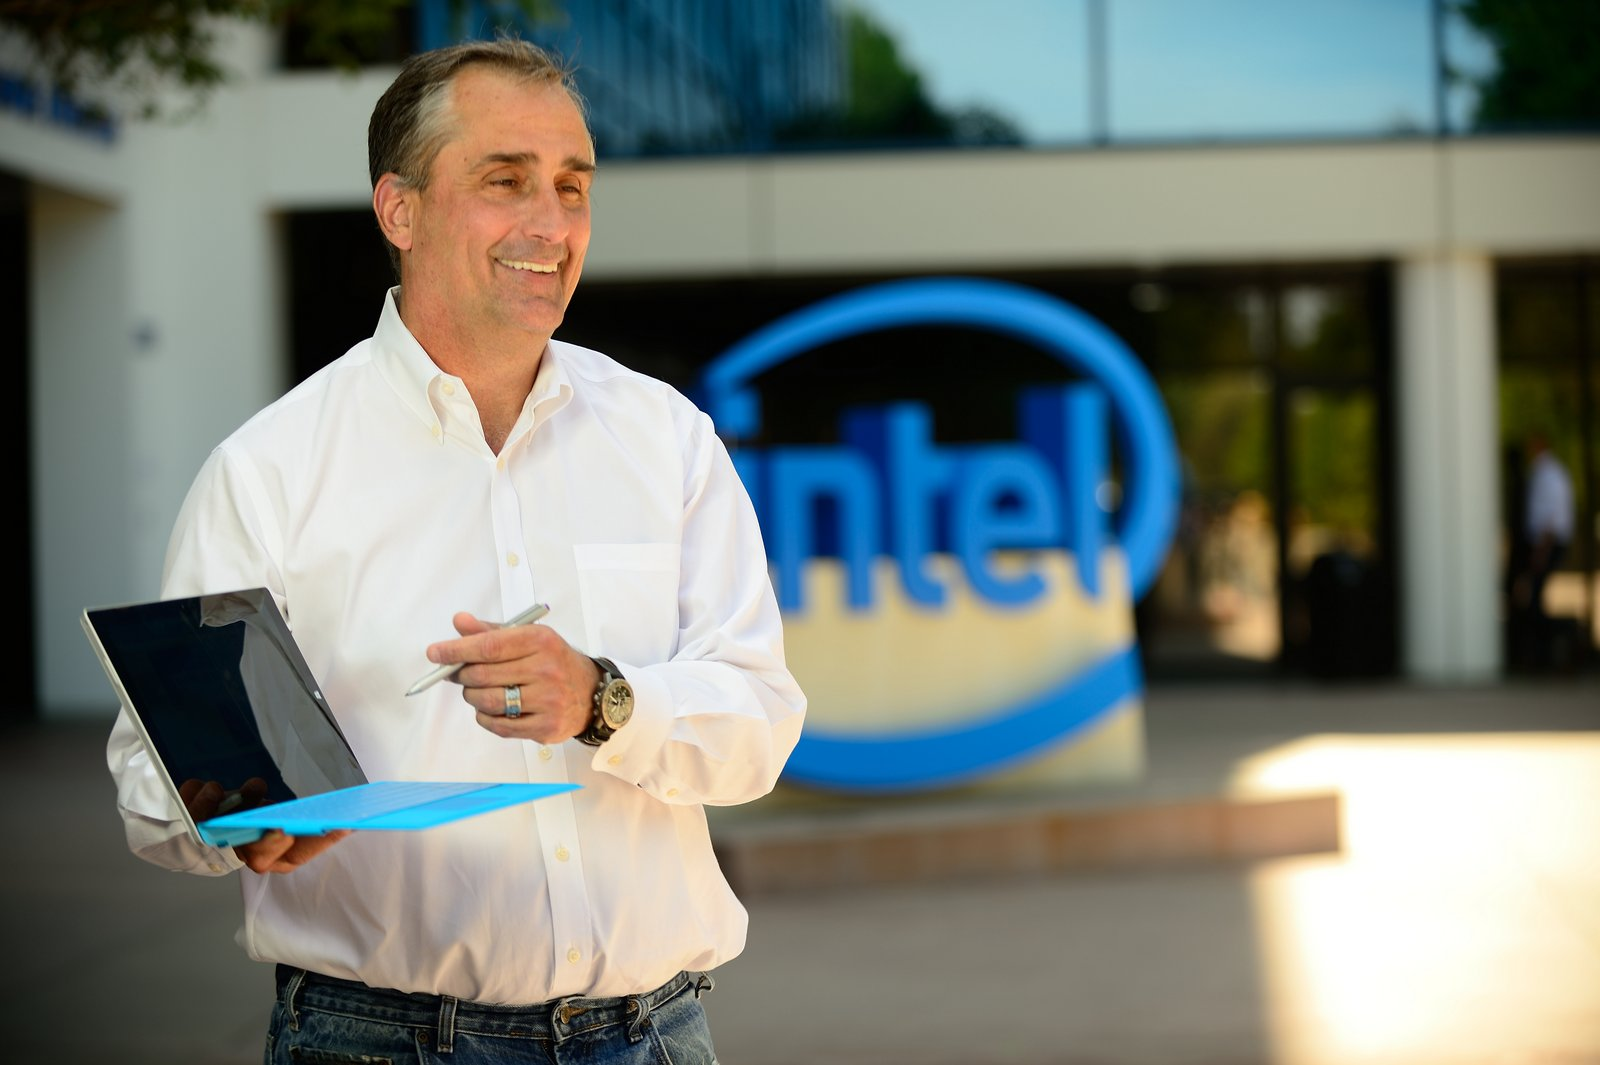 BrianKrzanich_with_SurfacePro3_Tablet.jpg